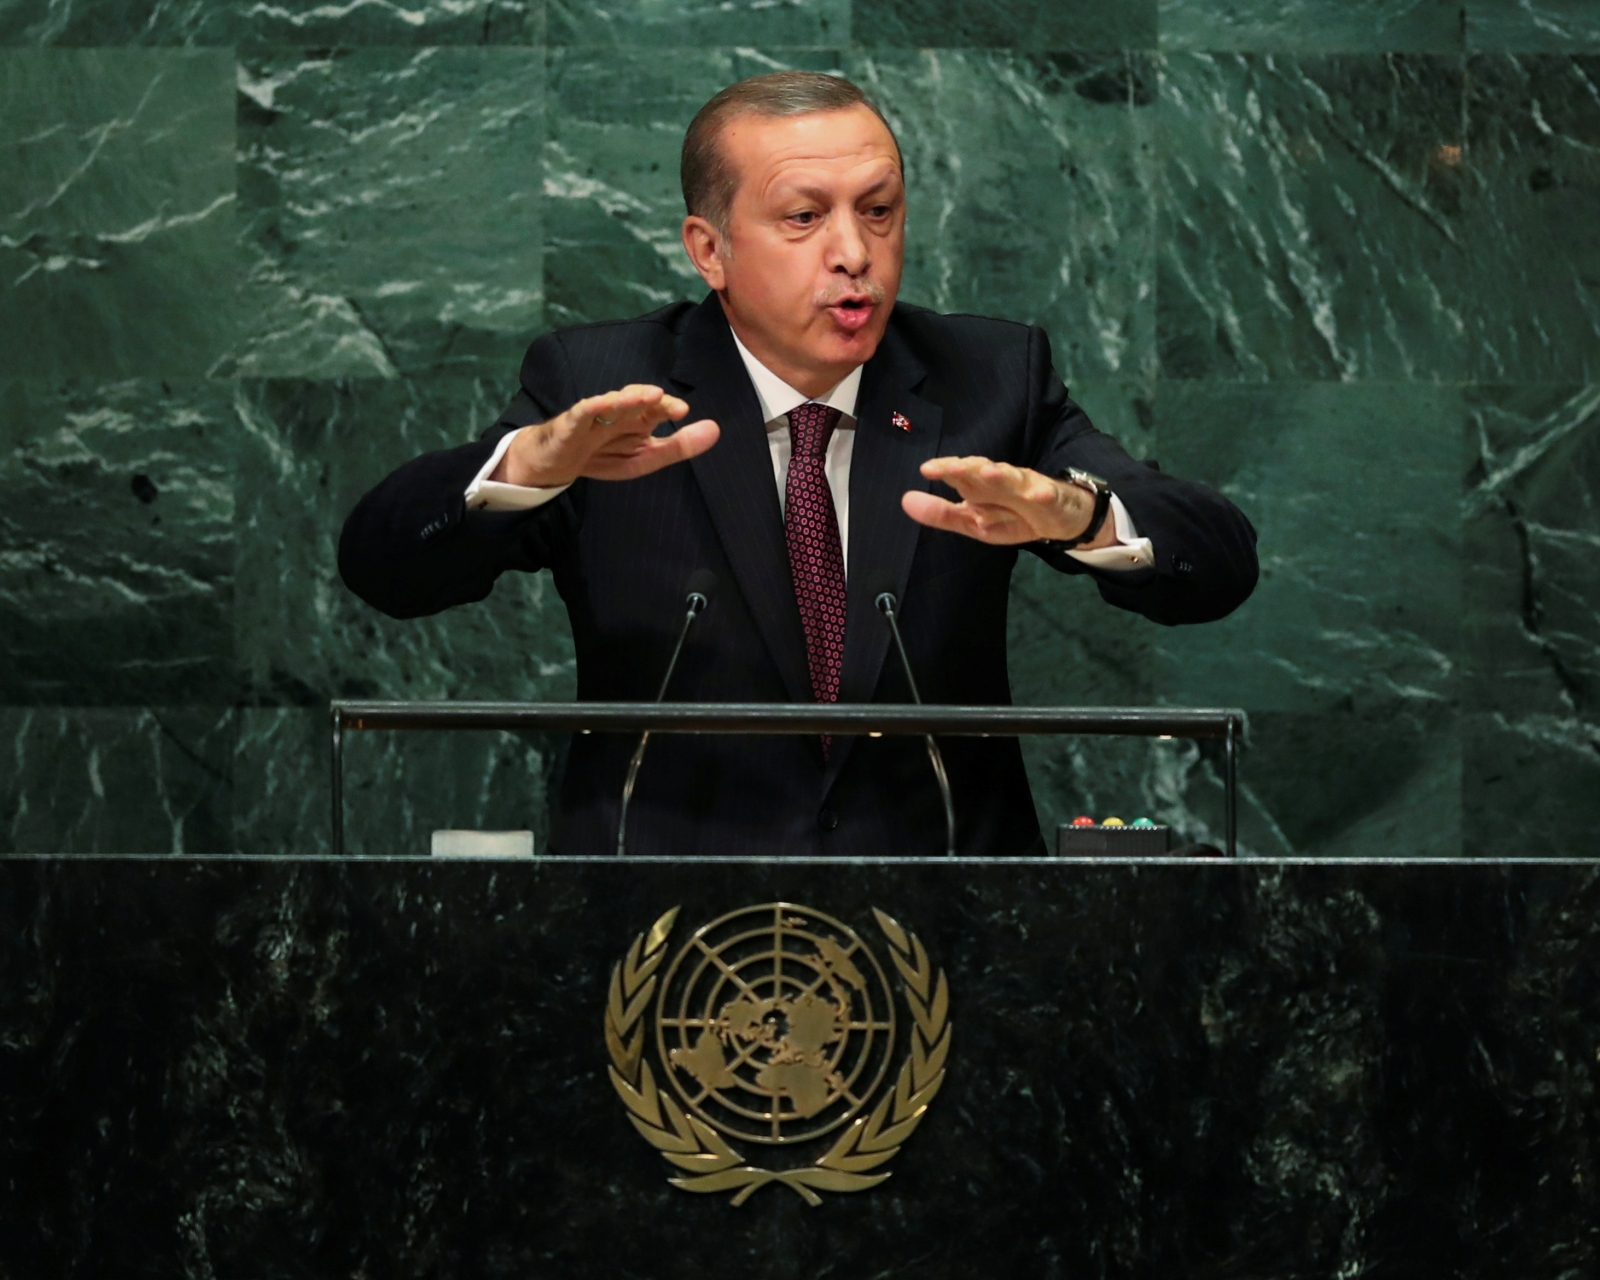 Turkey Erdogan UN General Asembly